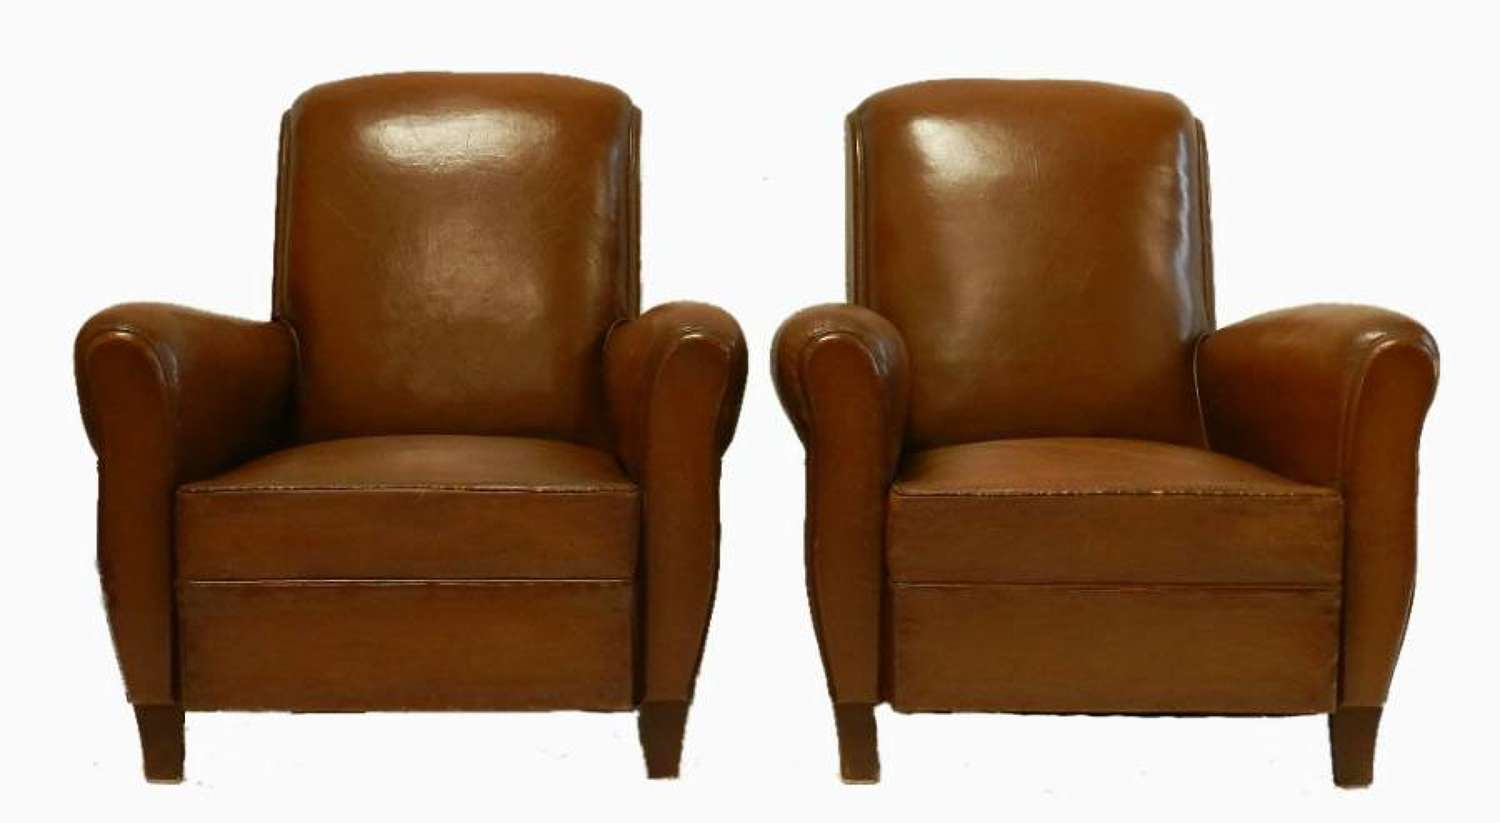 Pair of French Leather Club Chairs early C20 in superb original condition